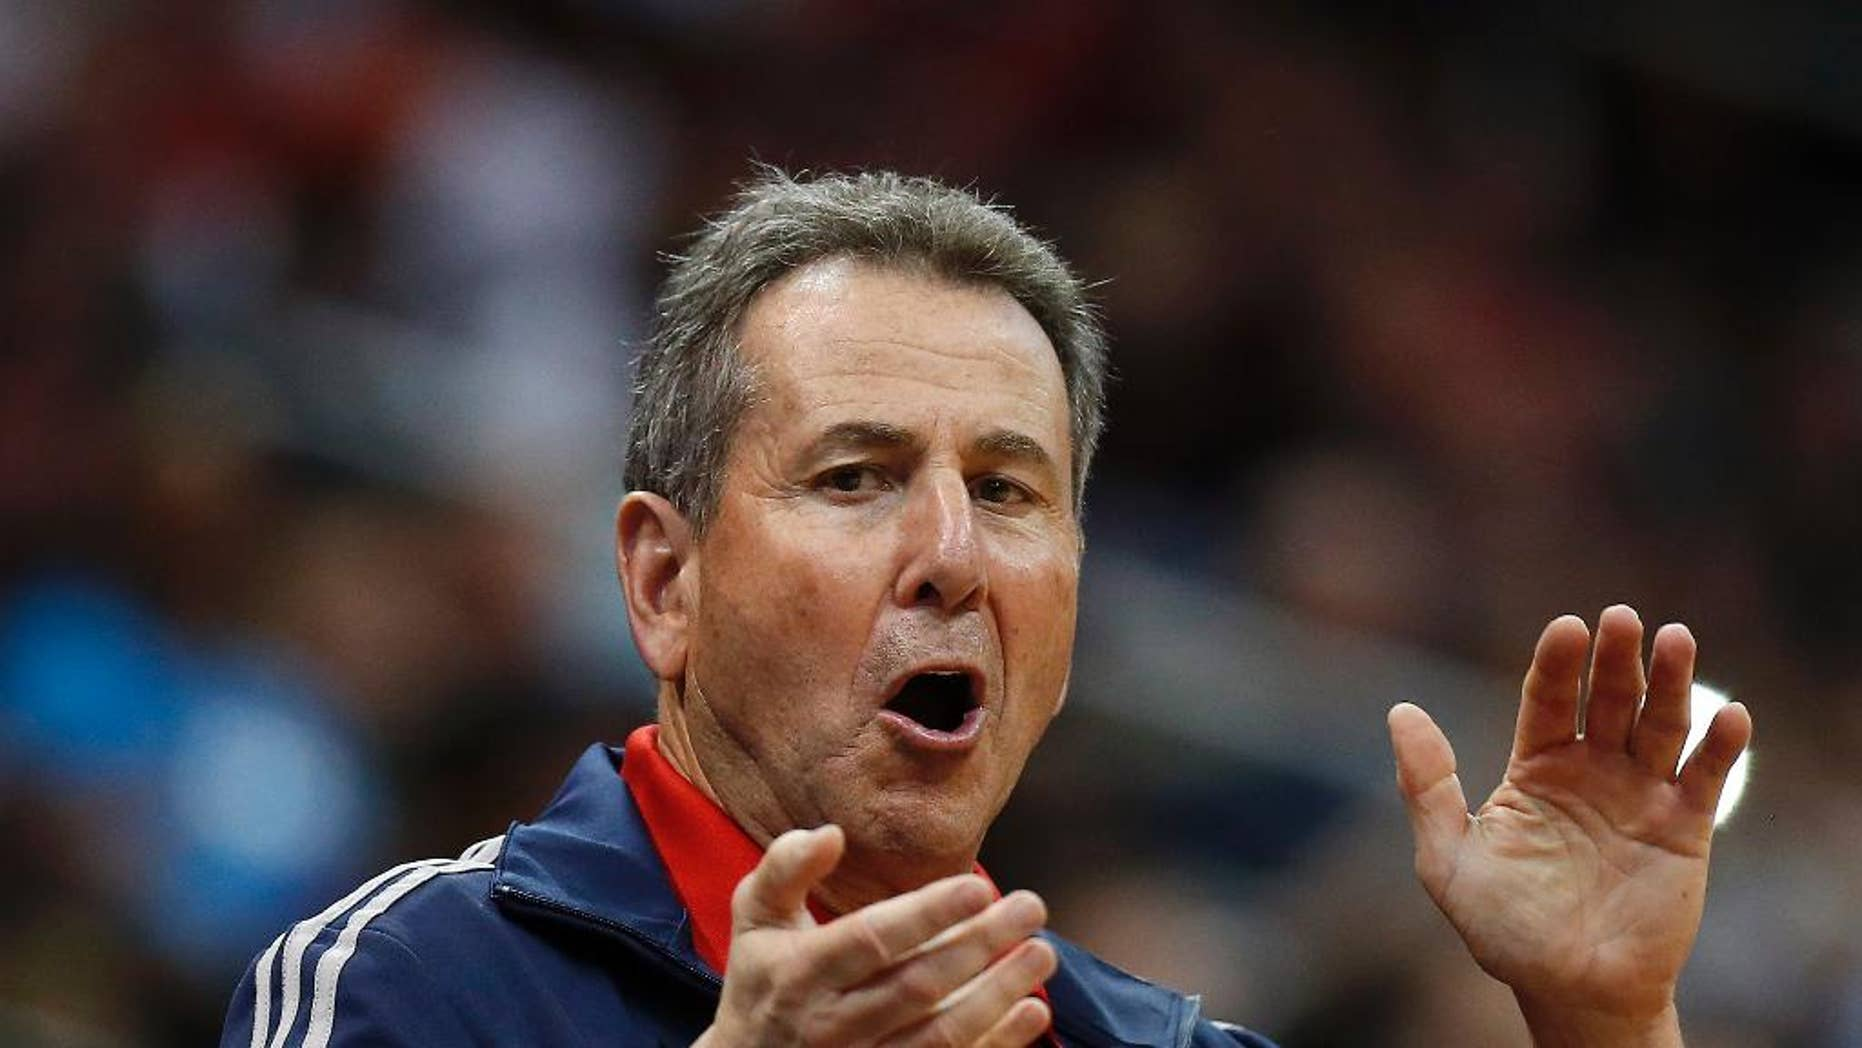 Atlanta Hawks co-owner Bruce Levenson on an April 26, 2014 file photo,